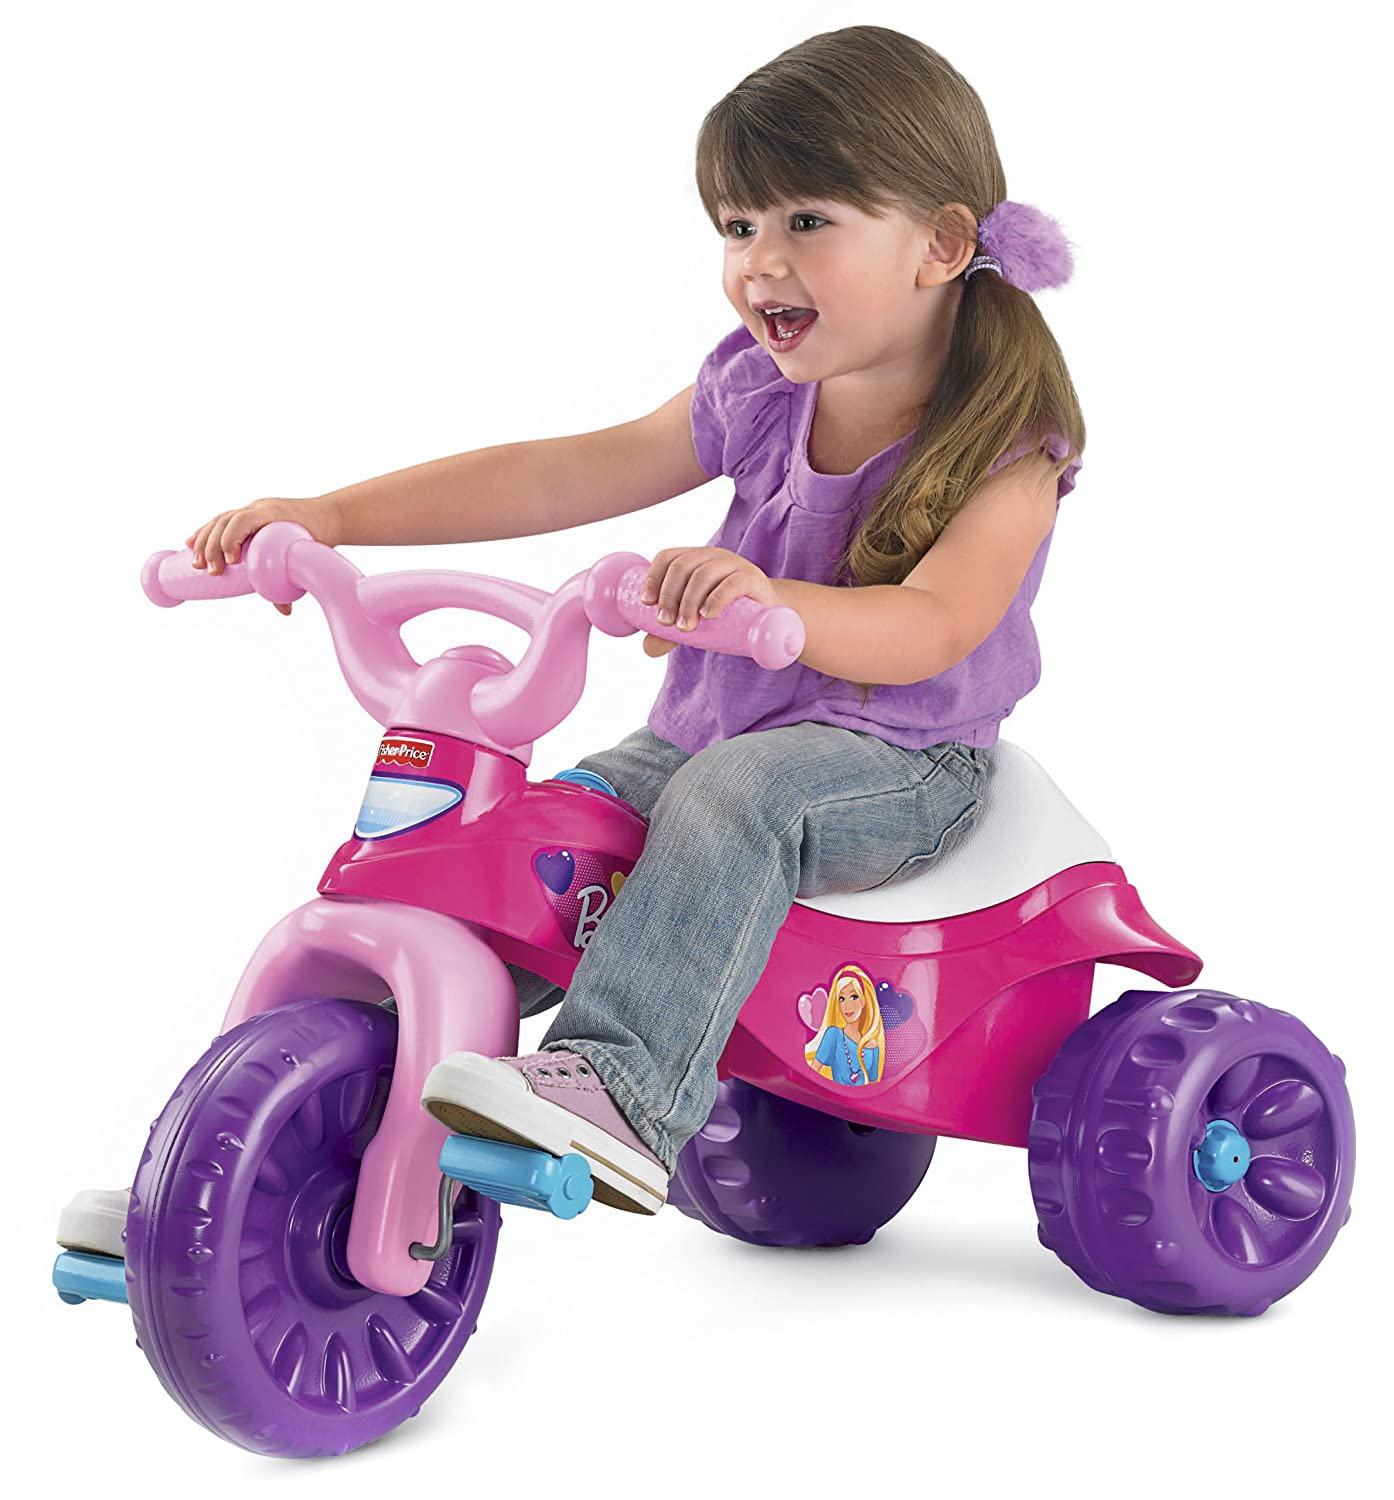 Toys For 2 Year Olds For Girls : Top toys for year old girls gift canyon